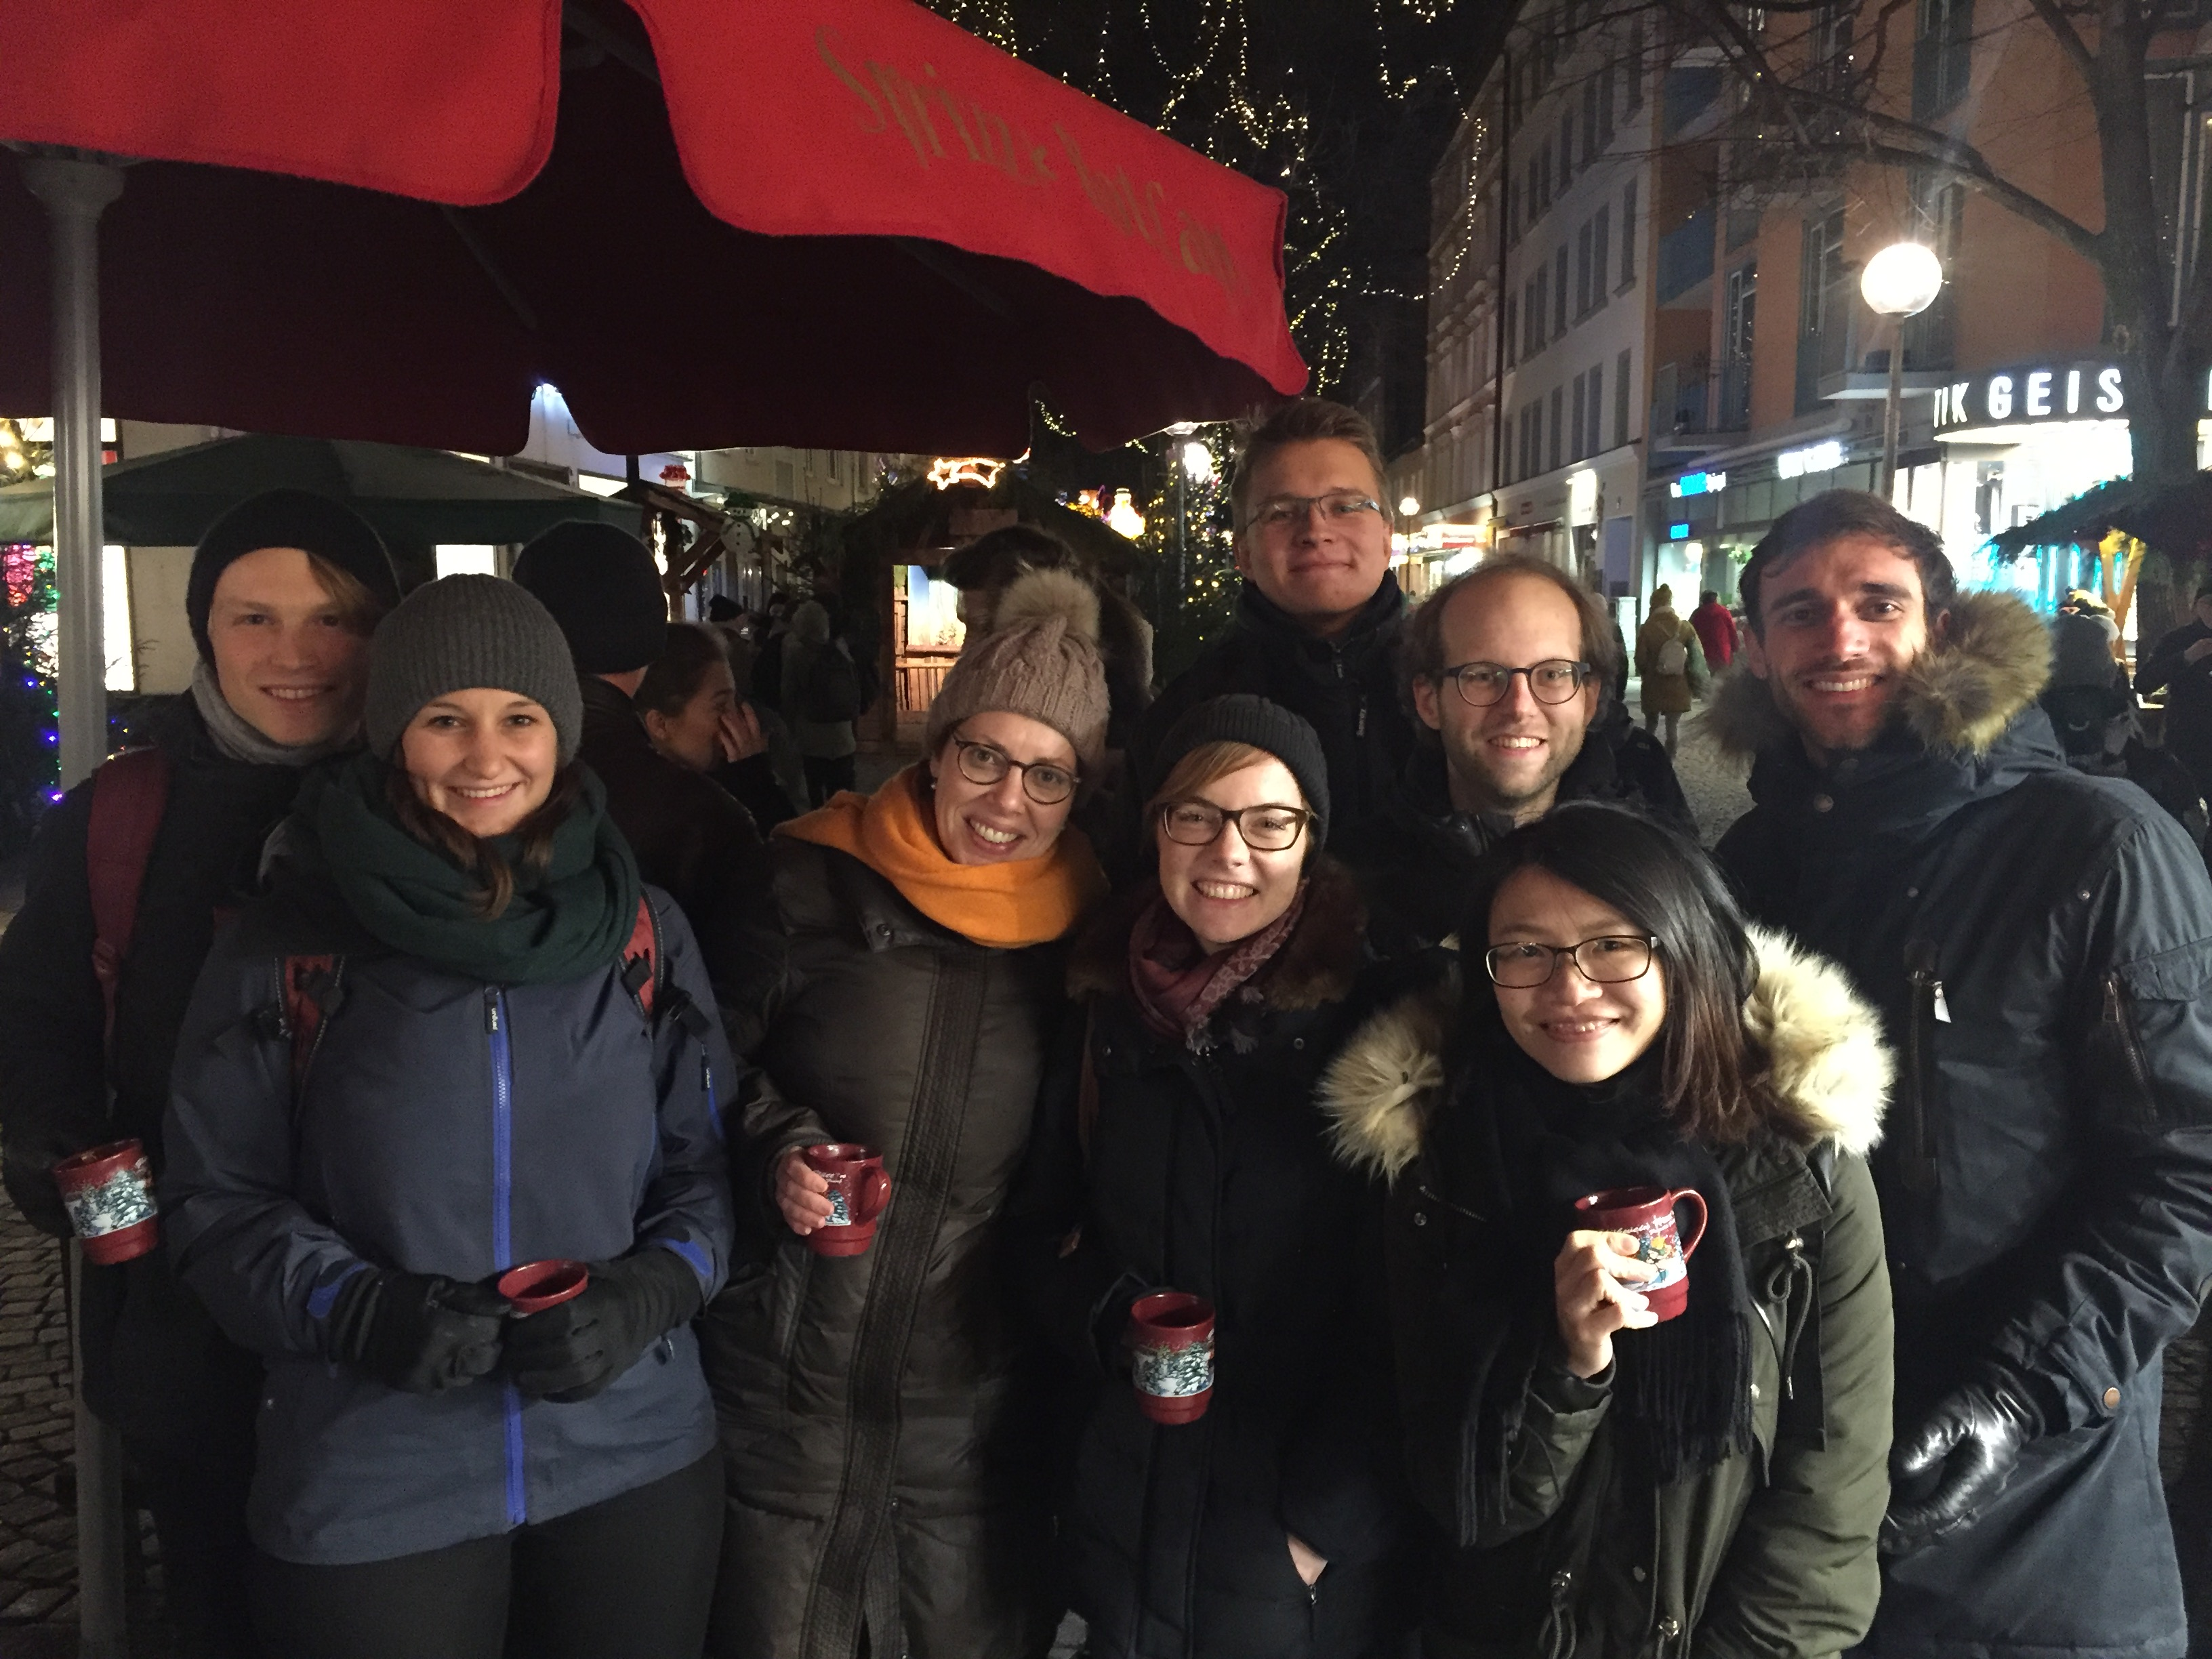 Group pic at Christmas market